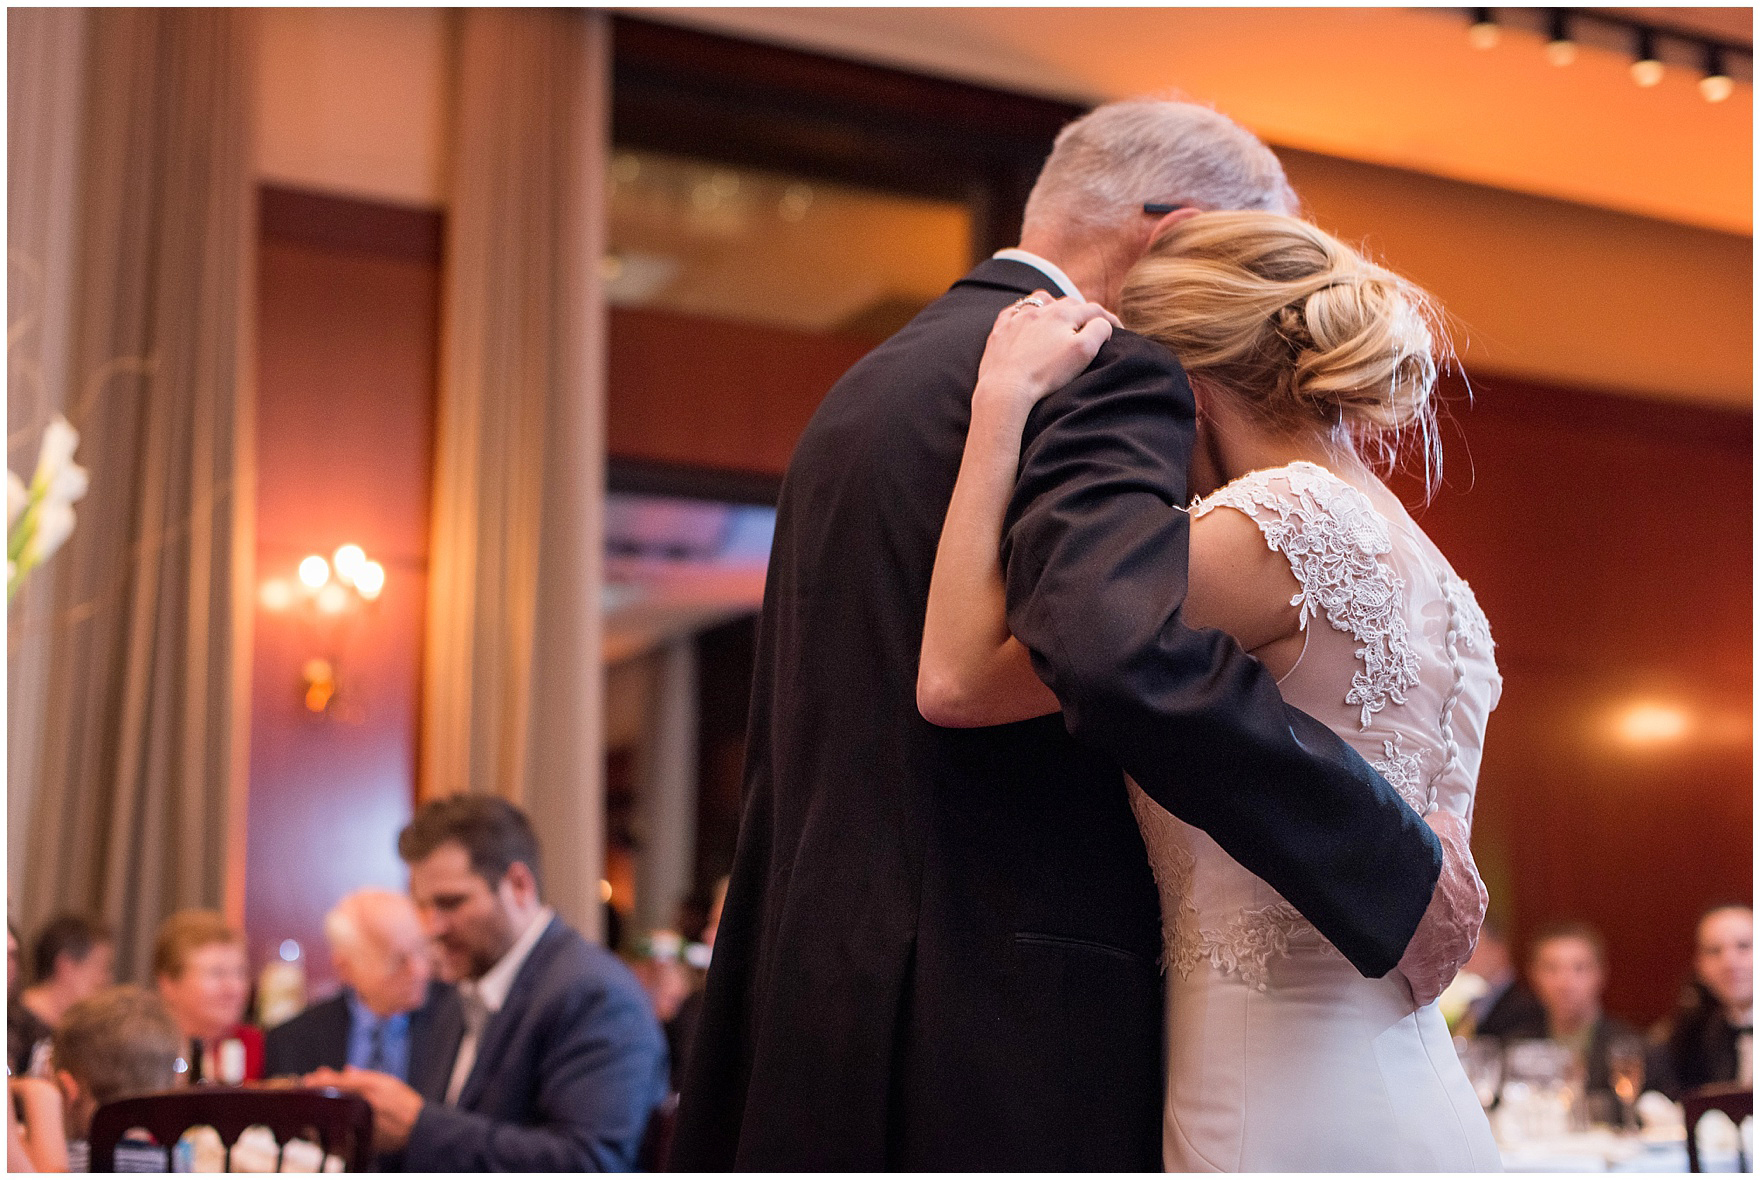 The father-daughter dance during a Newberry Library Chicago wedding reception.